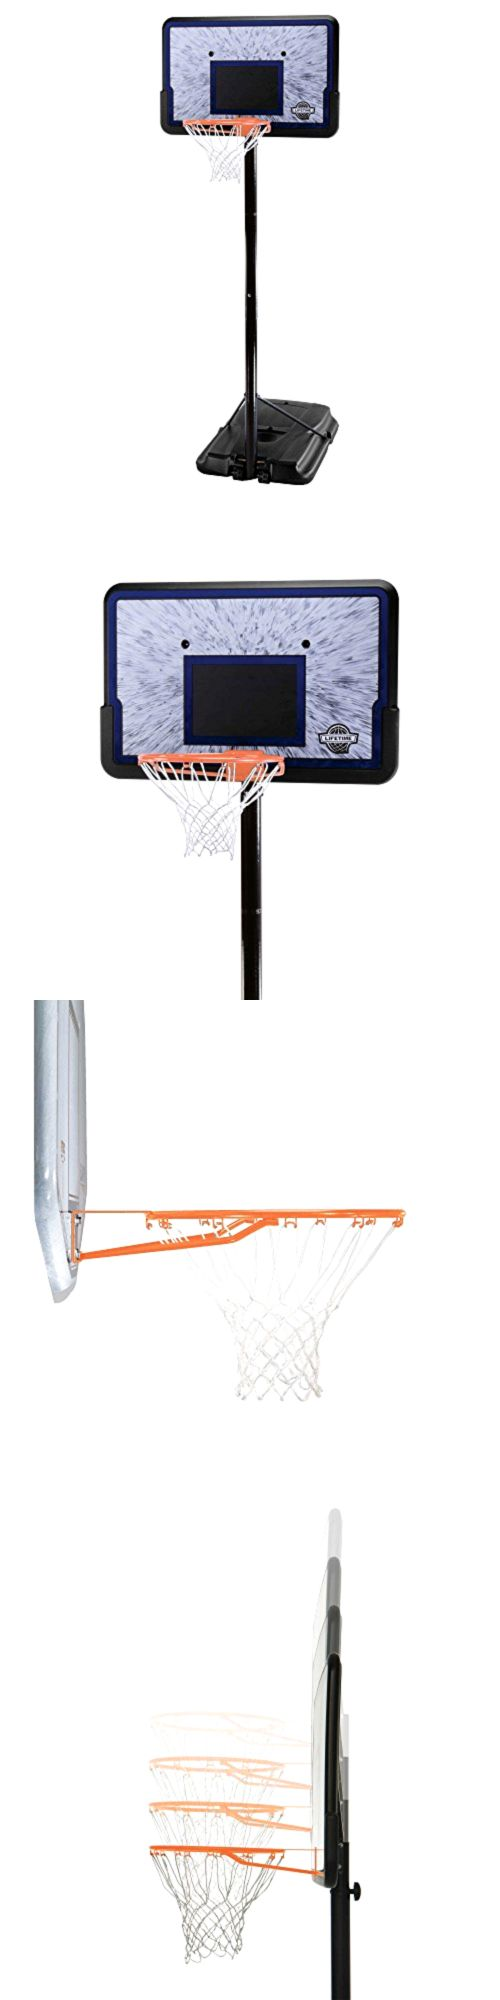 Backboard Systems 21196: Adjustable Portable Basketball System 44 Inch Backboard Pro Court Height -> BUY IT NOW ONLY: $122.09 on eBay!